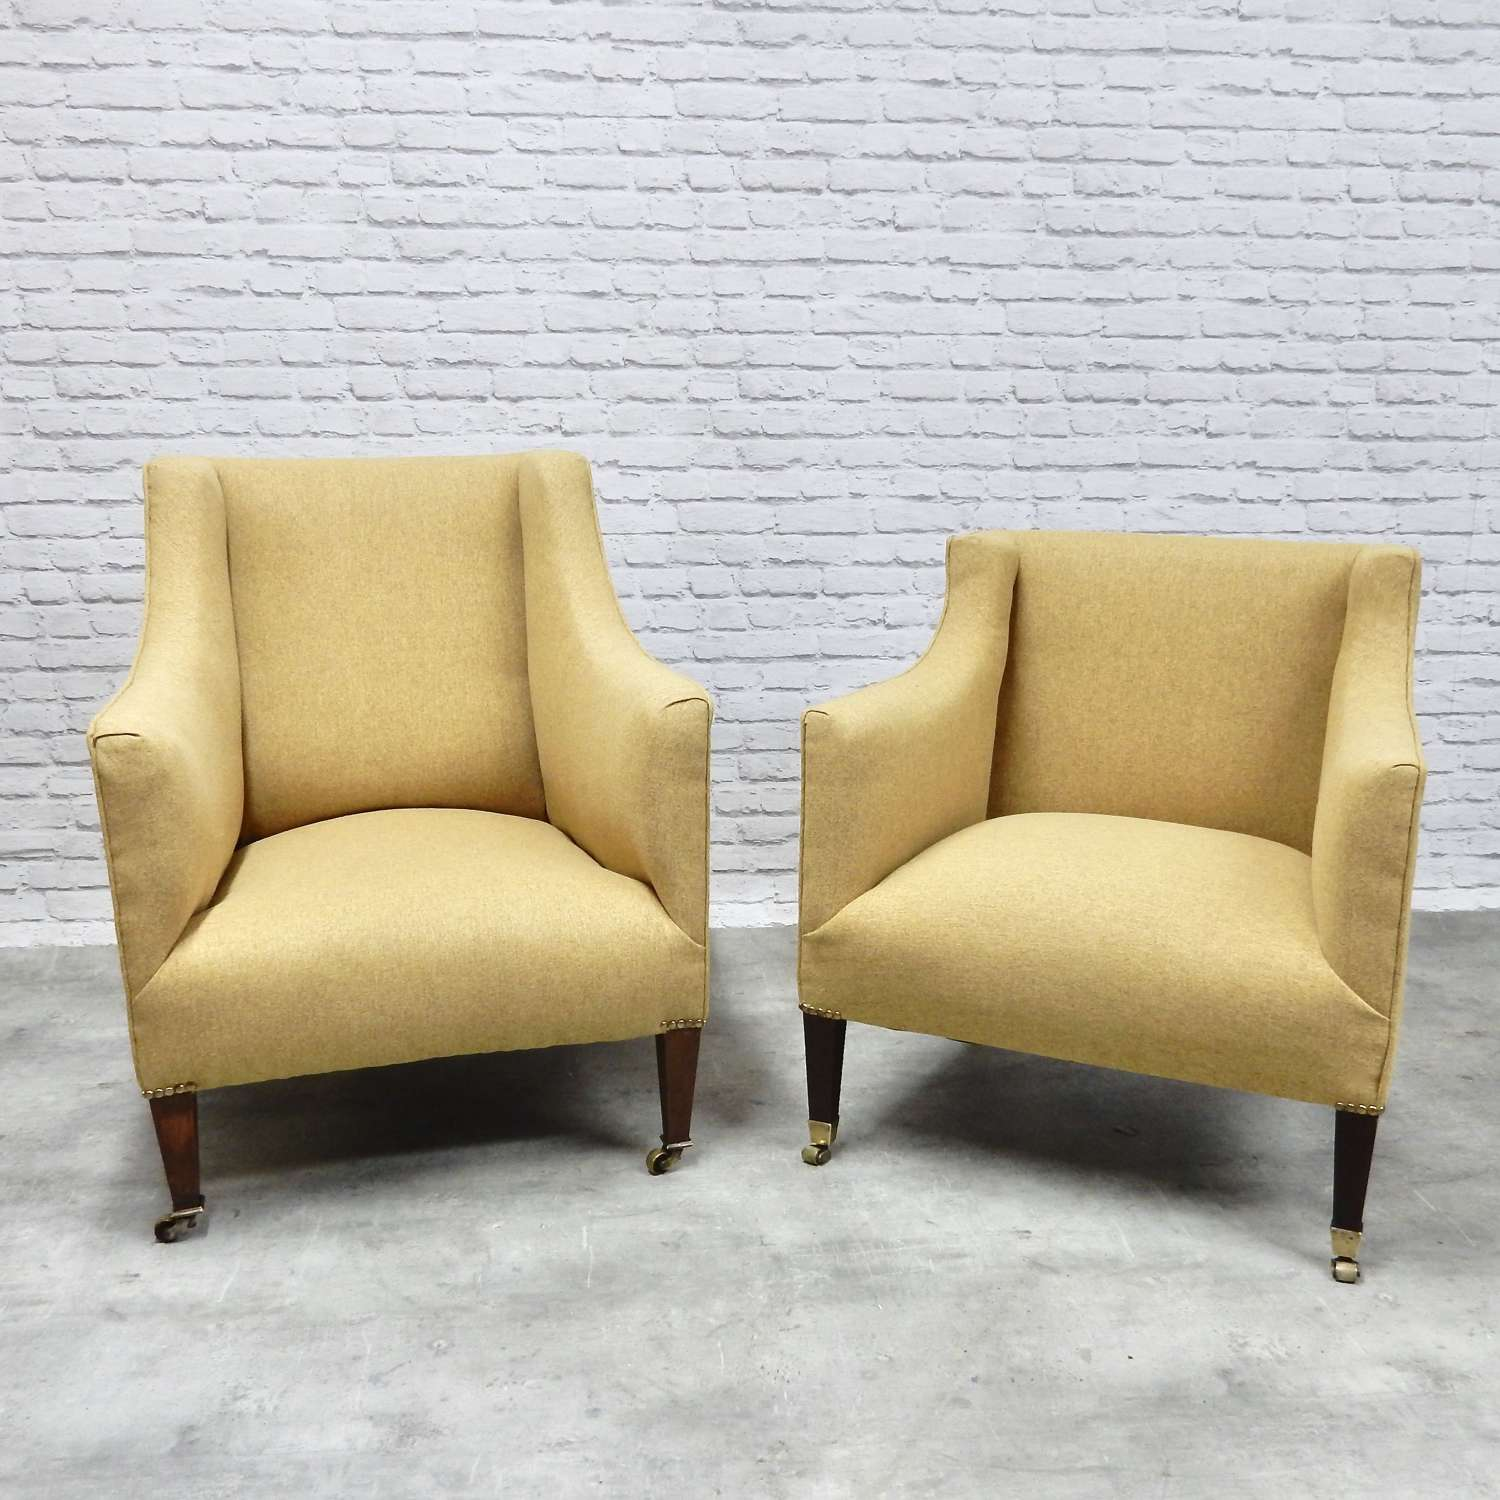 Two C19th Upholstered Armchairs